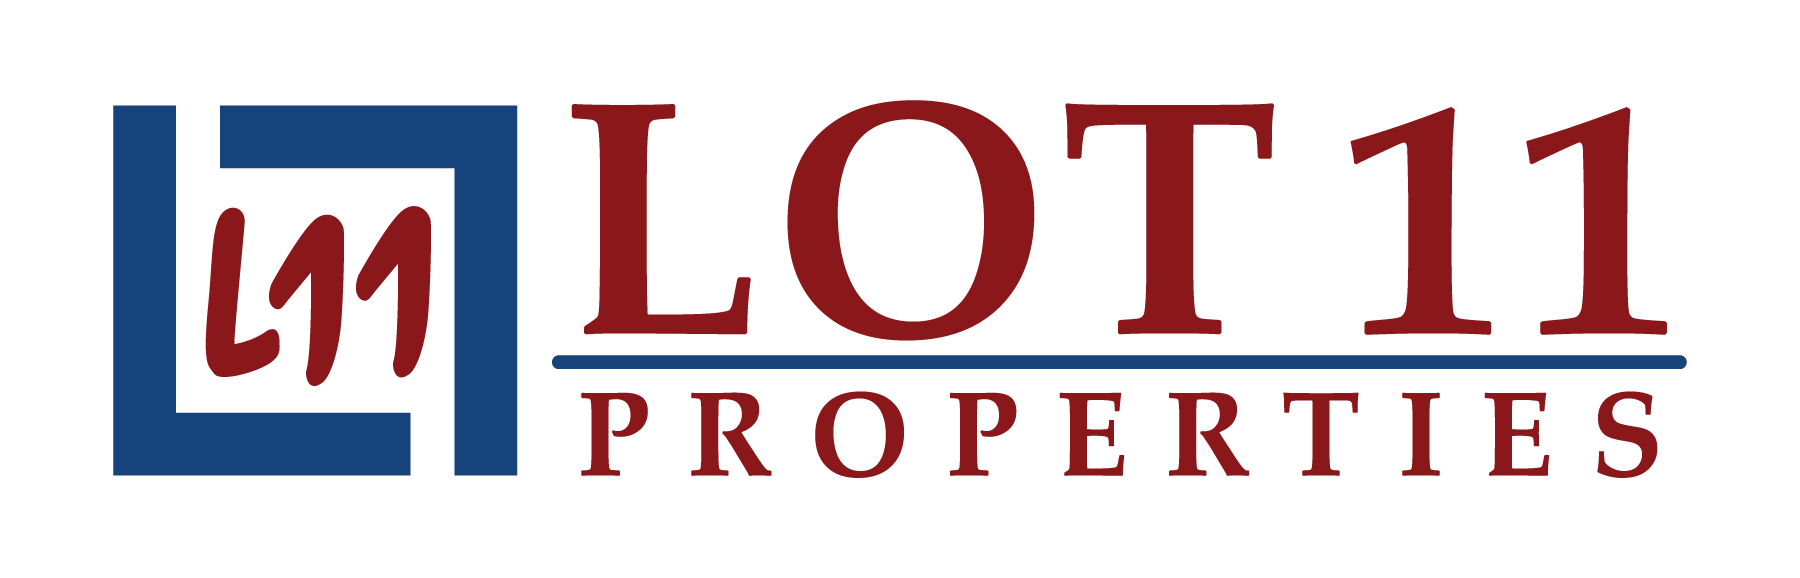 Lot 11 Properties logo